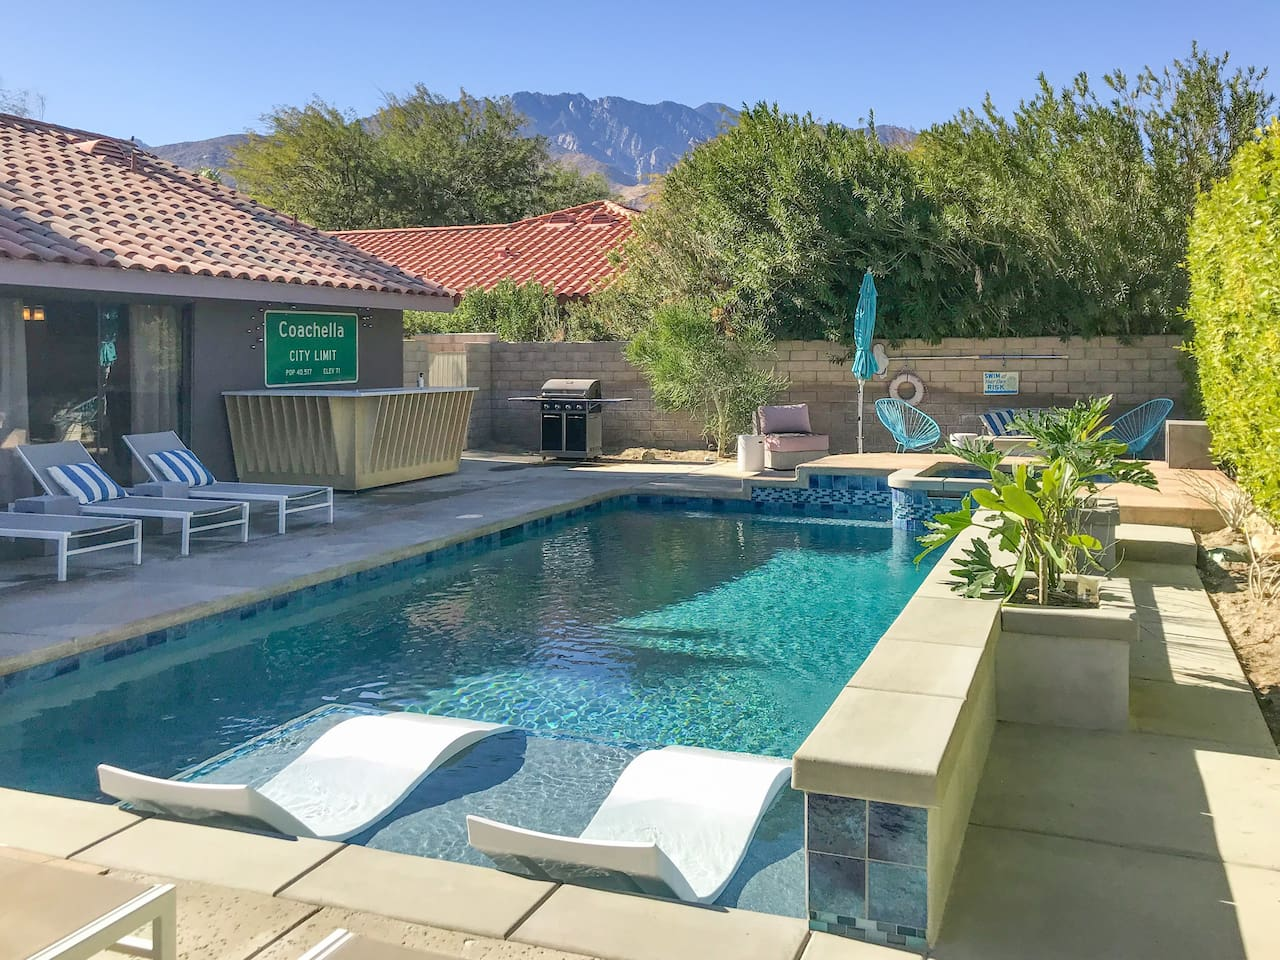 Beautiful mountain views from the pool - your own private resort!